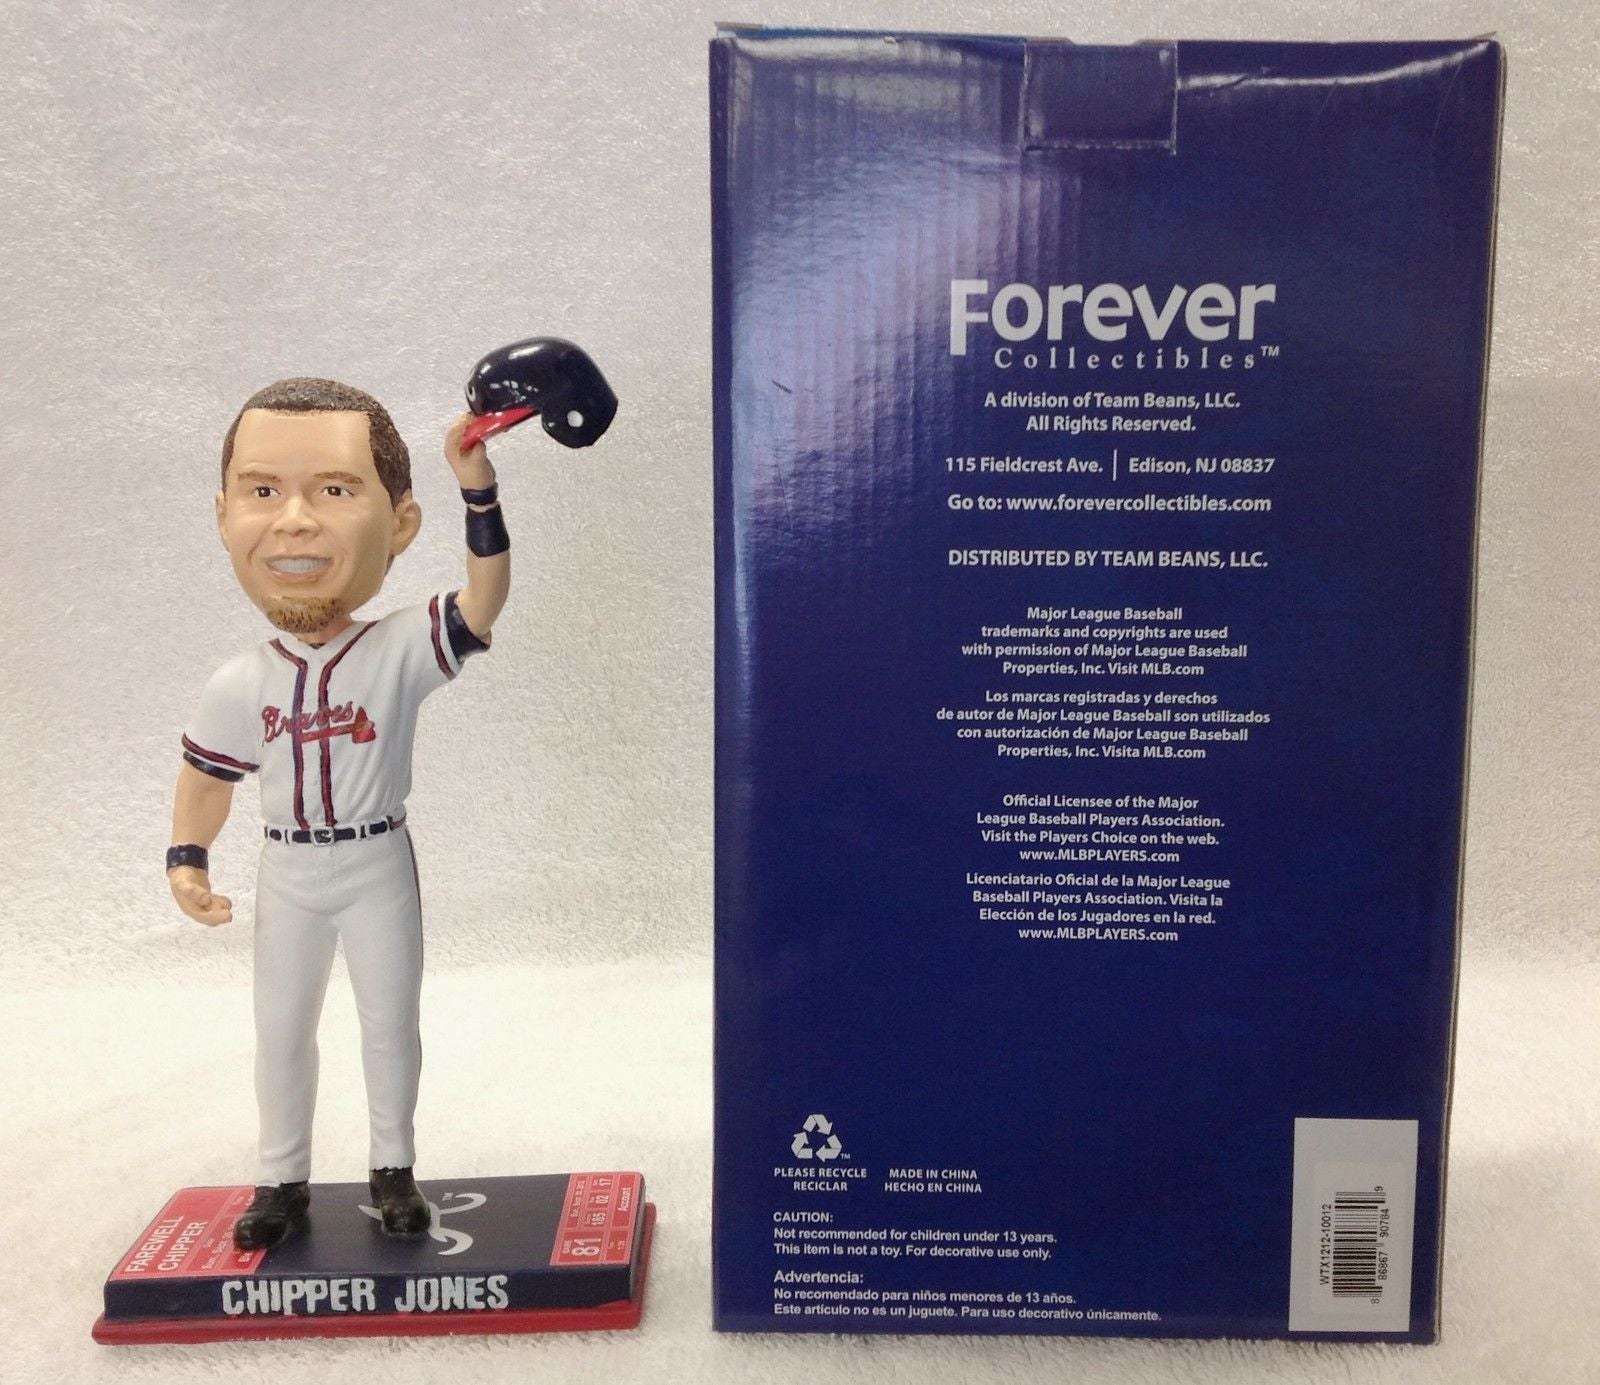 Chipper Jones Atlanta Braves Farewell Bobblehead MLB